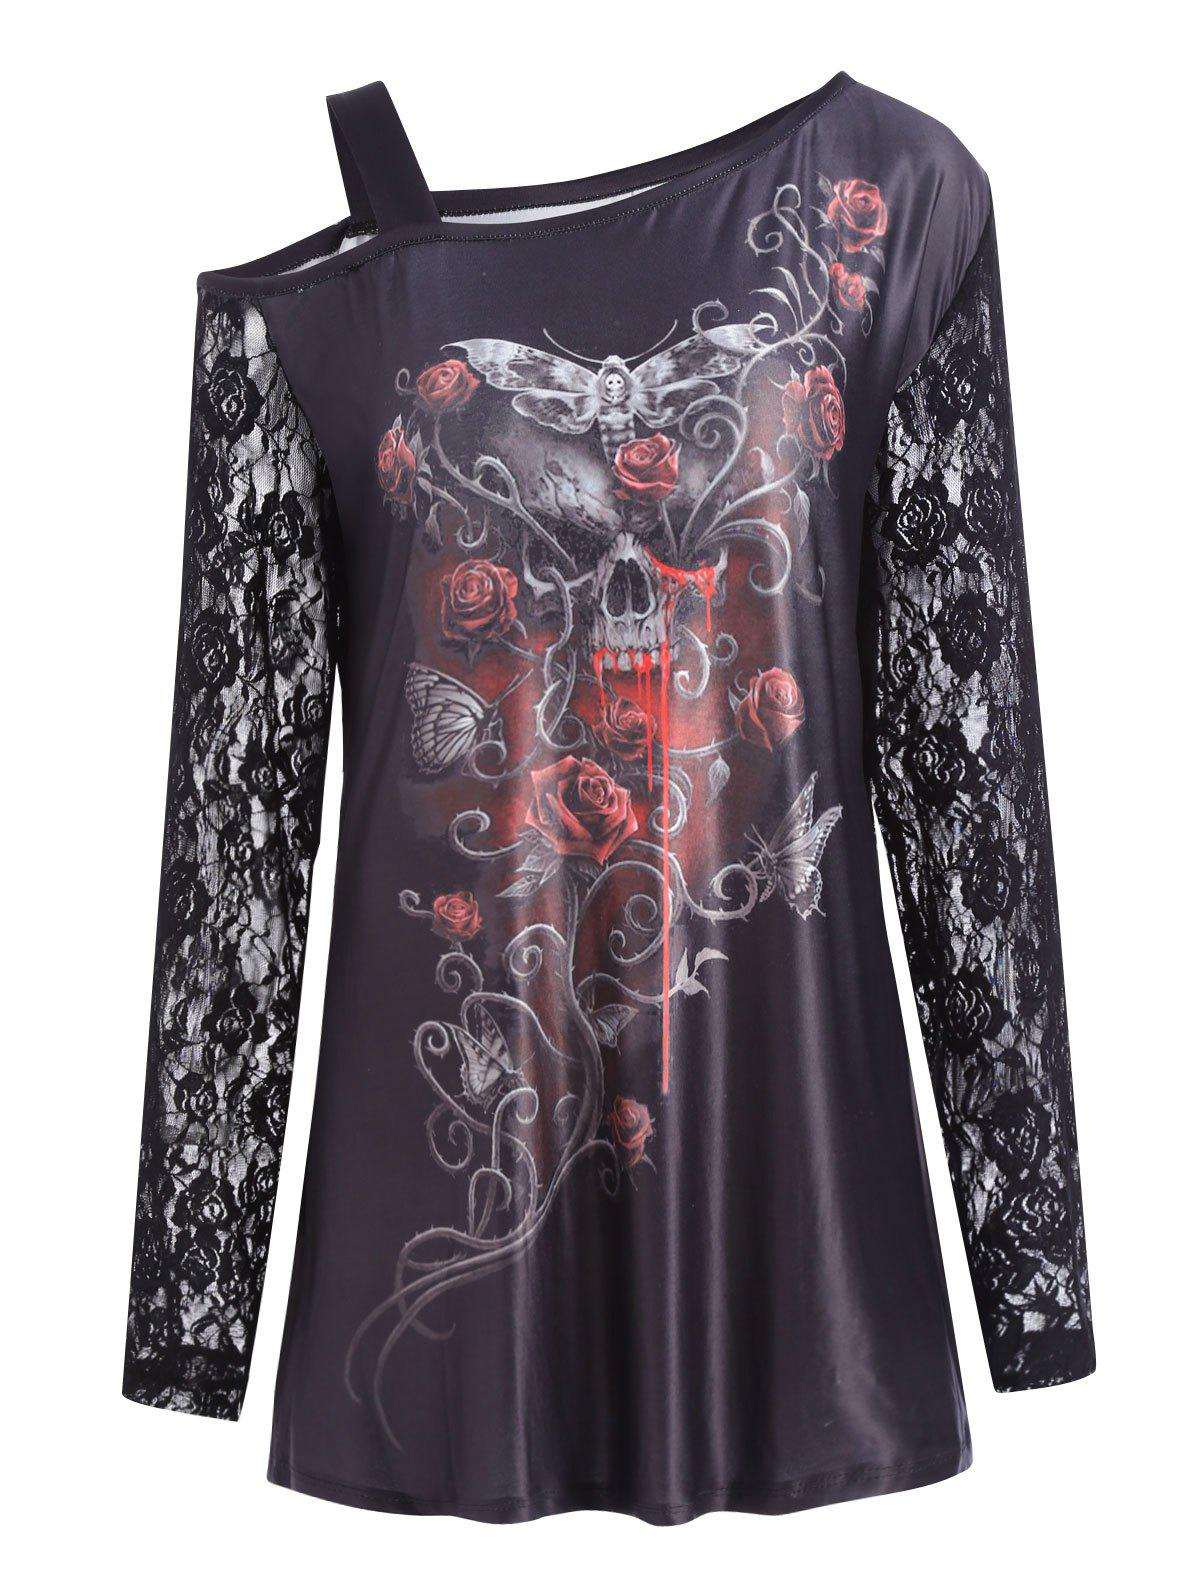 Plus Size Cold Shoulder Halloween Floral Skull T-shirtWOMEN<br><br>Size: 4XL; Color: BLACK; Material: Cotton Blends,Polyester; Shirt Length: Long; Sleeve Length: Full; Collar: Skew Collar; Style: Fashion; Season: Fall,Winter; Embellishment: Hollow Out,Lace,Pattern; Pattern Type: Floral,Print,Skulls; Weight: 0.2300kg; Package Contents: 1 x Tee;